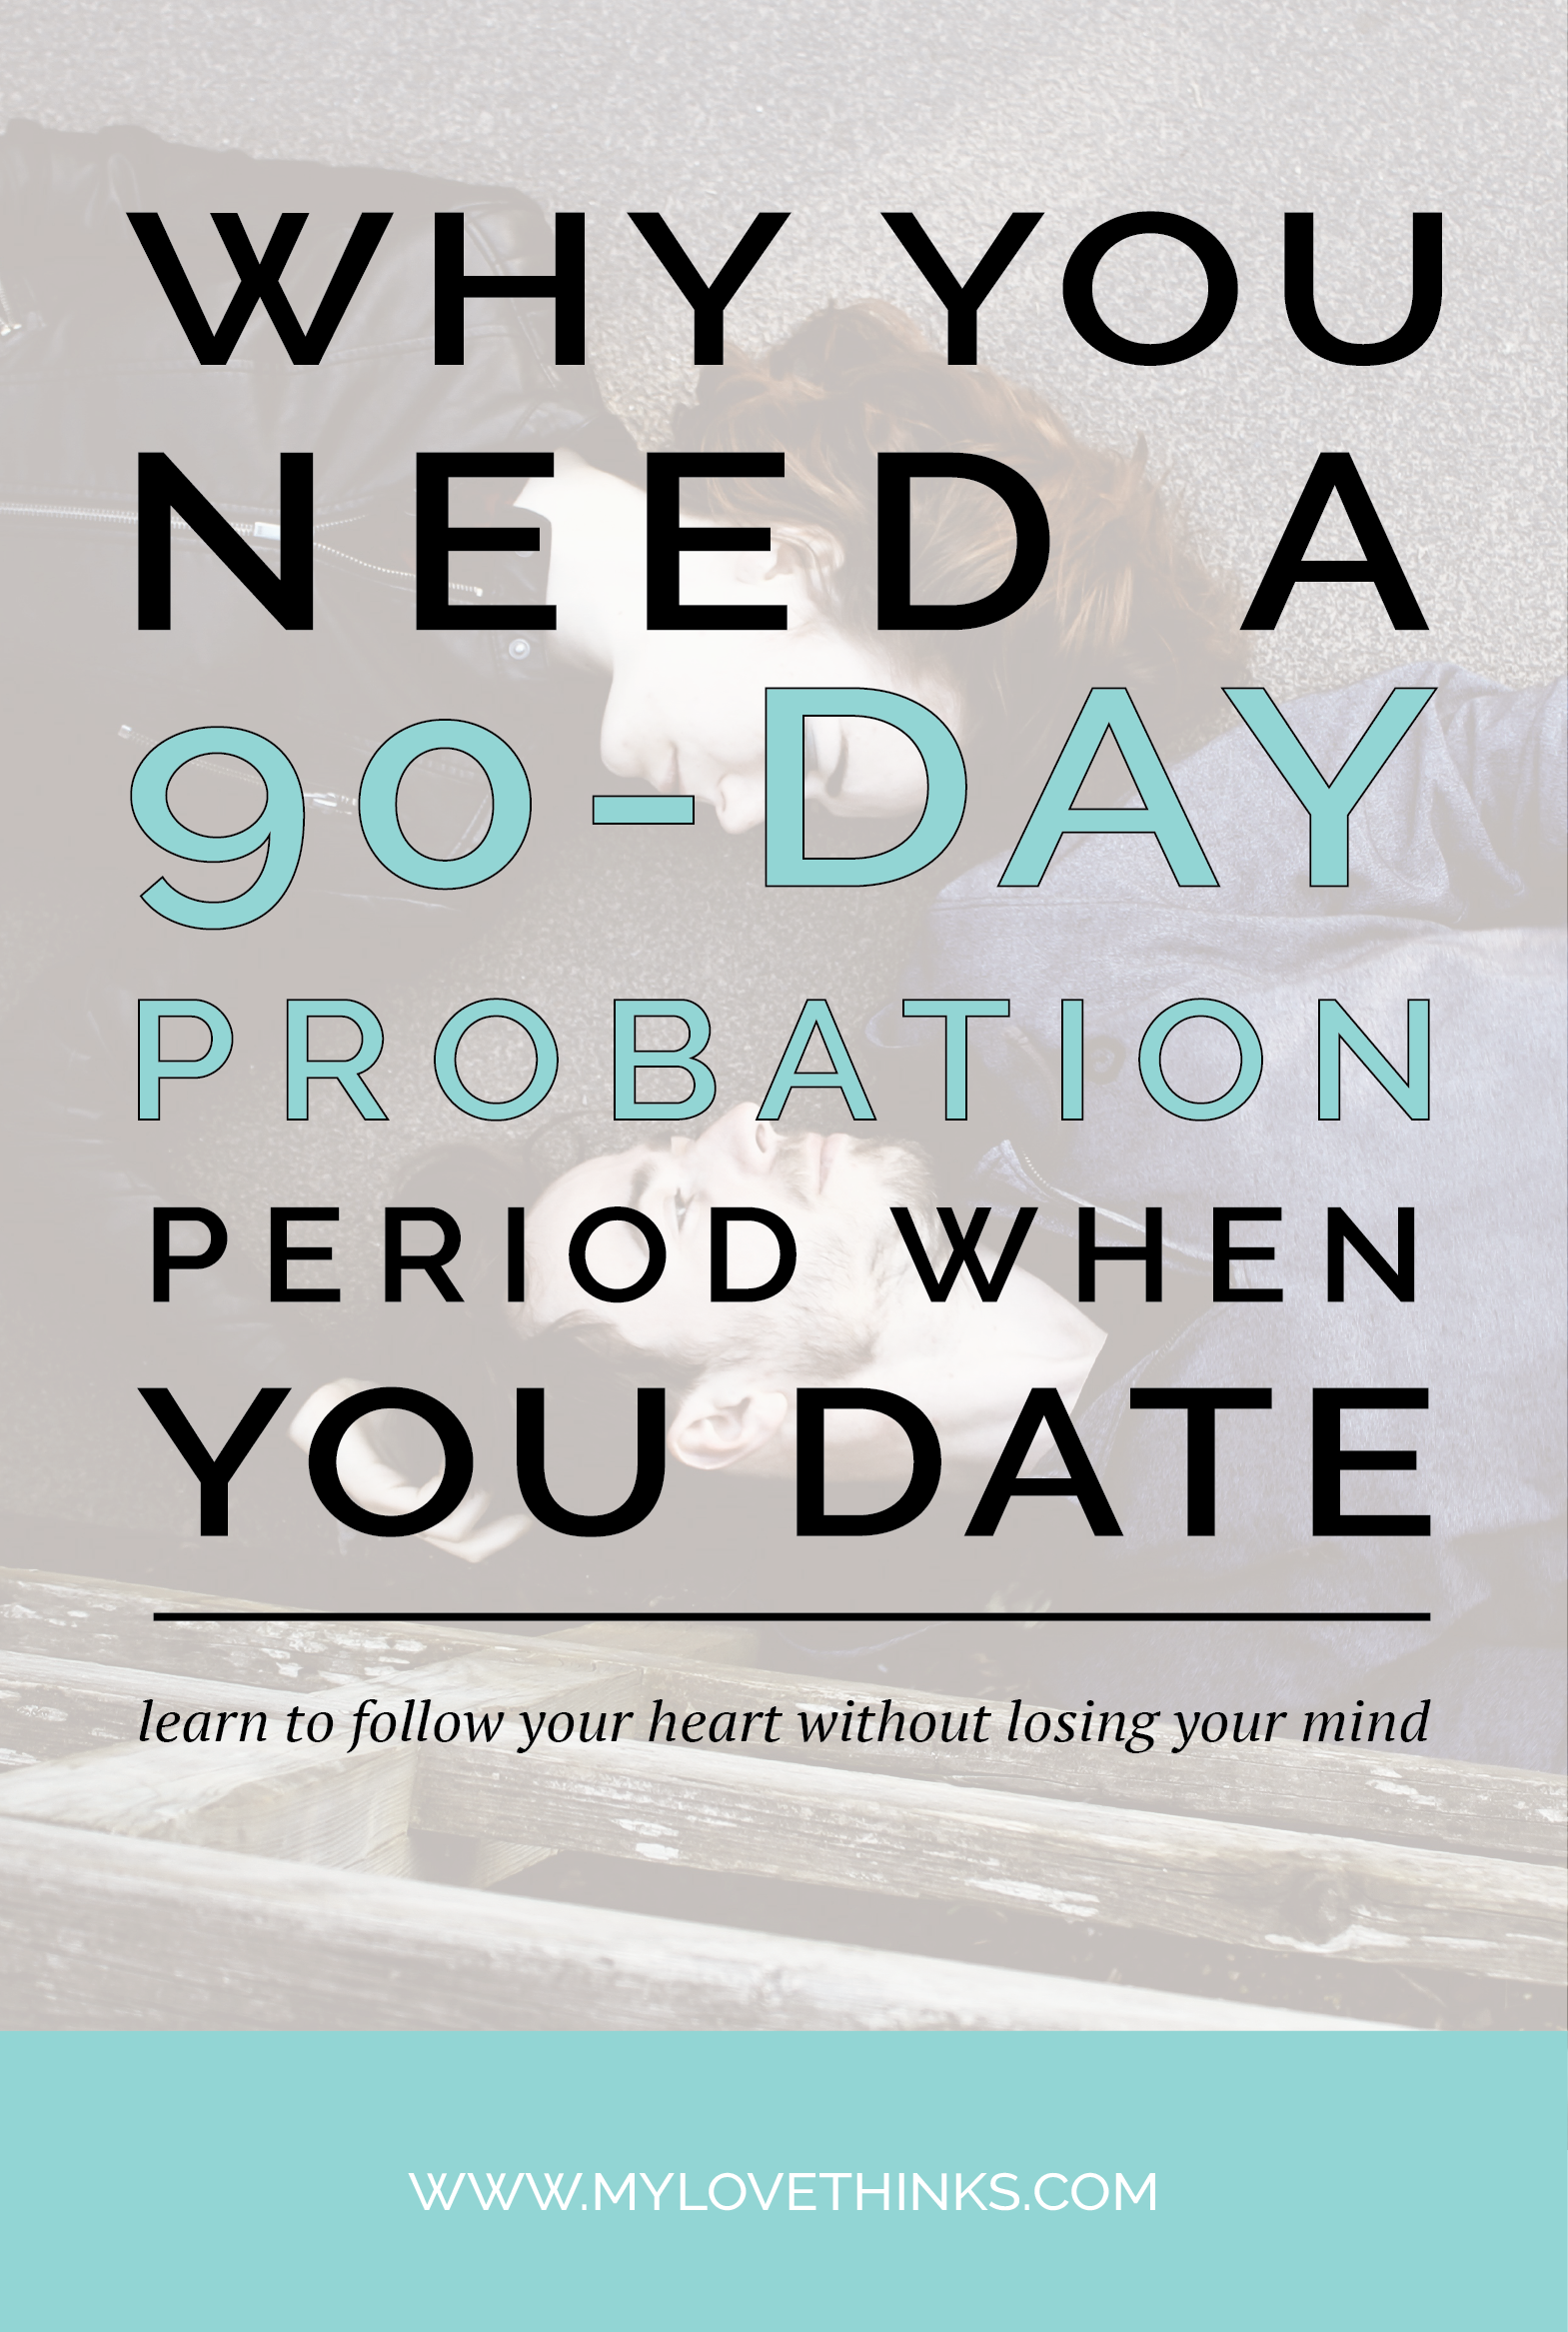 90 day probation period